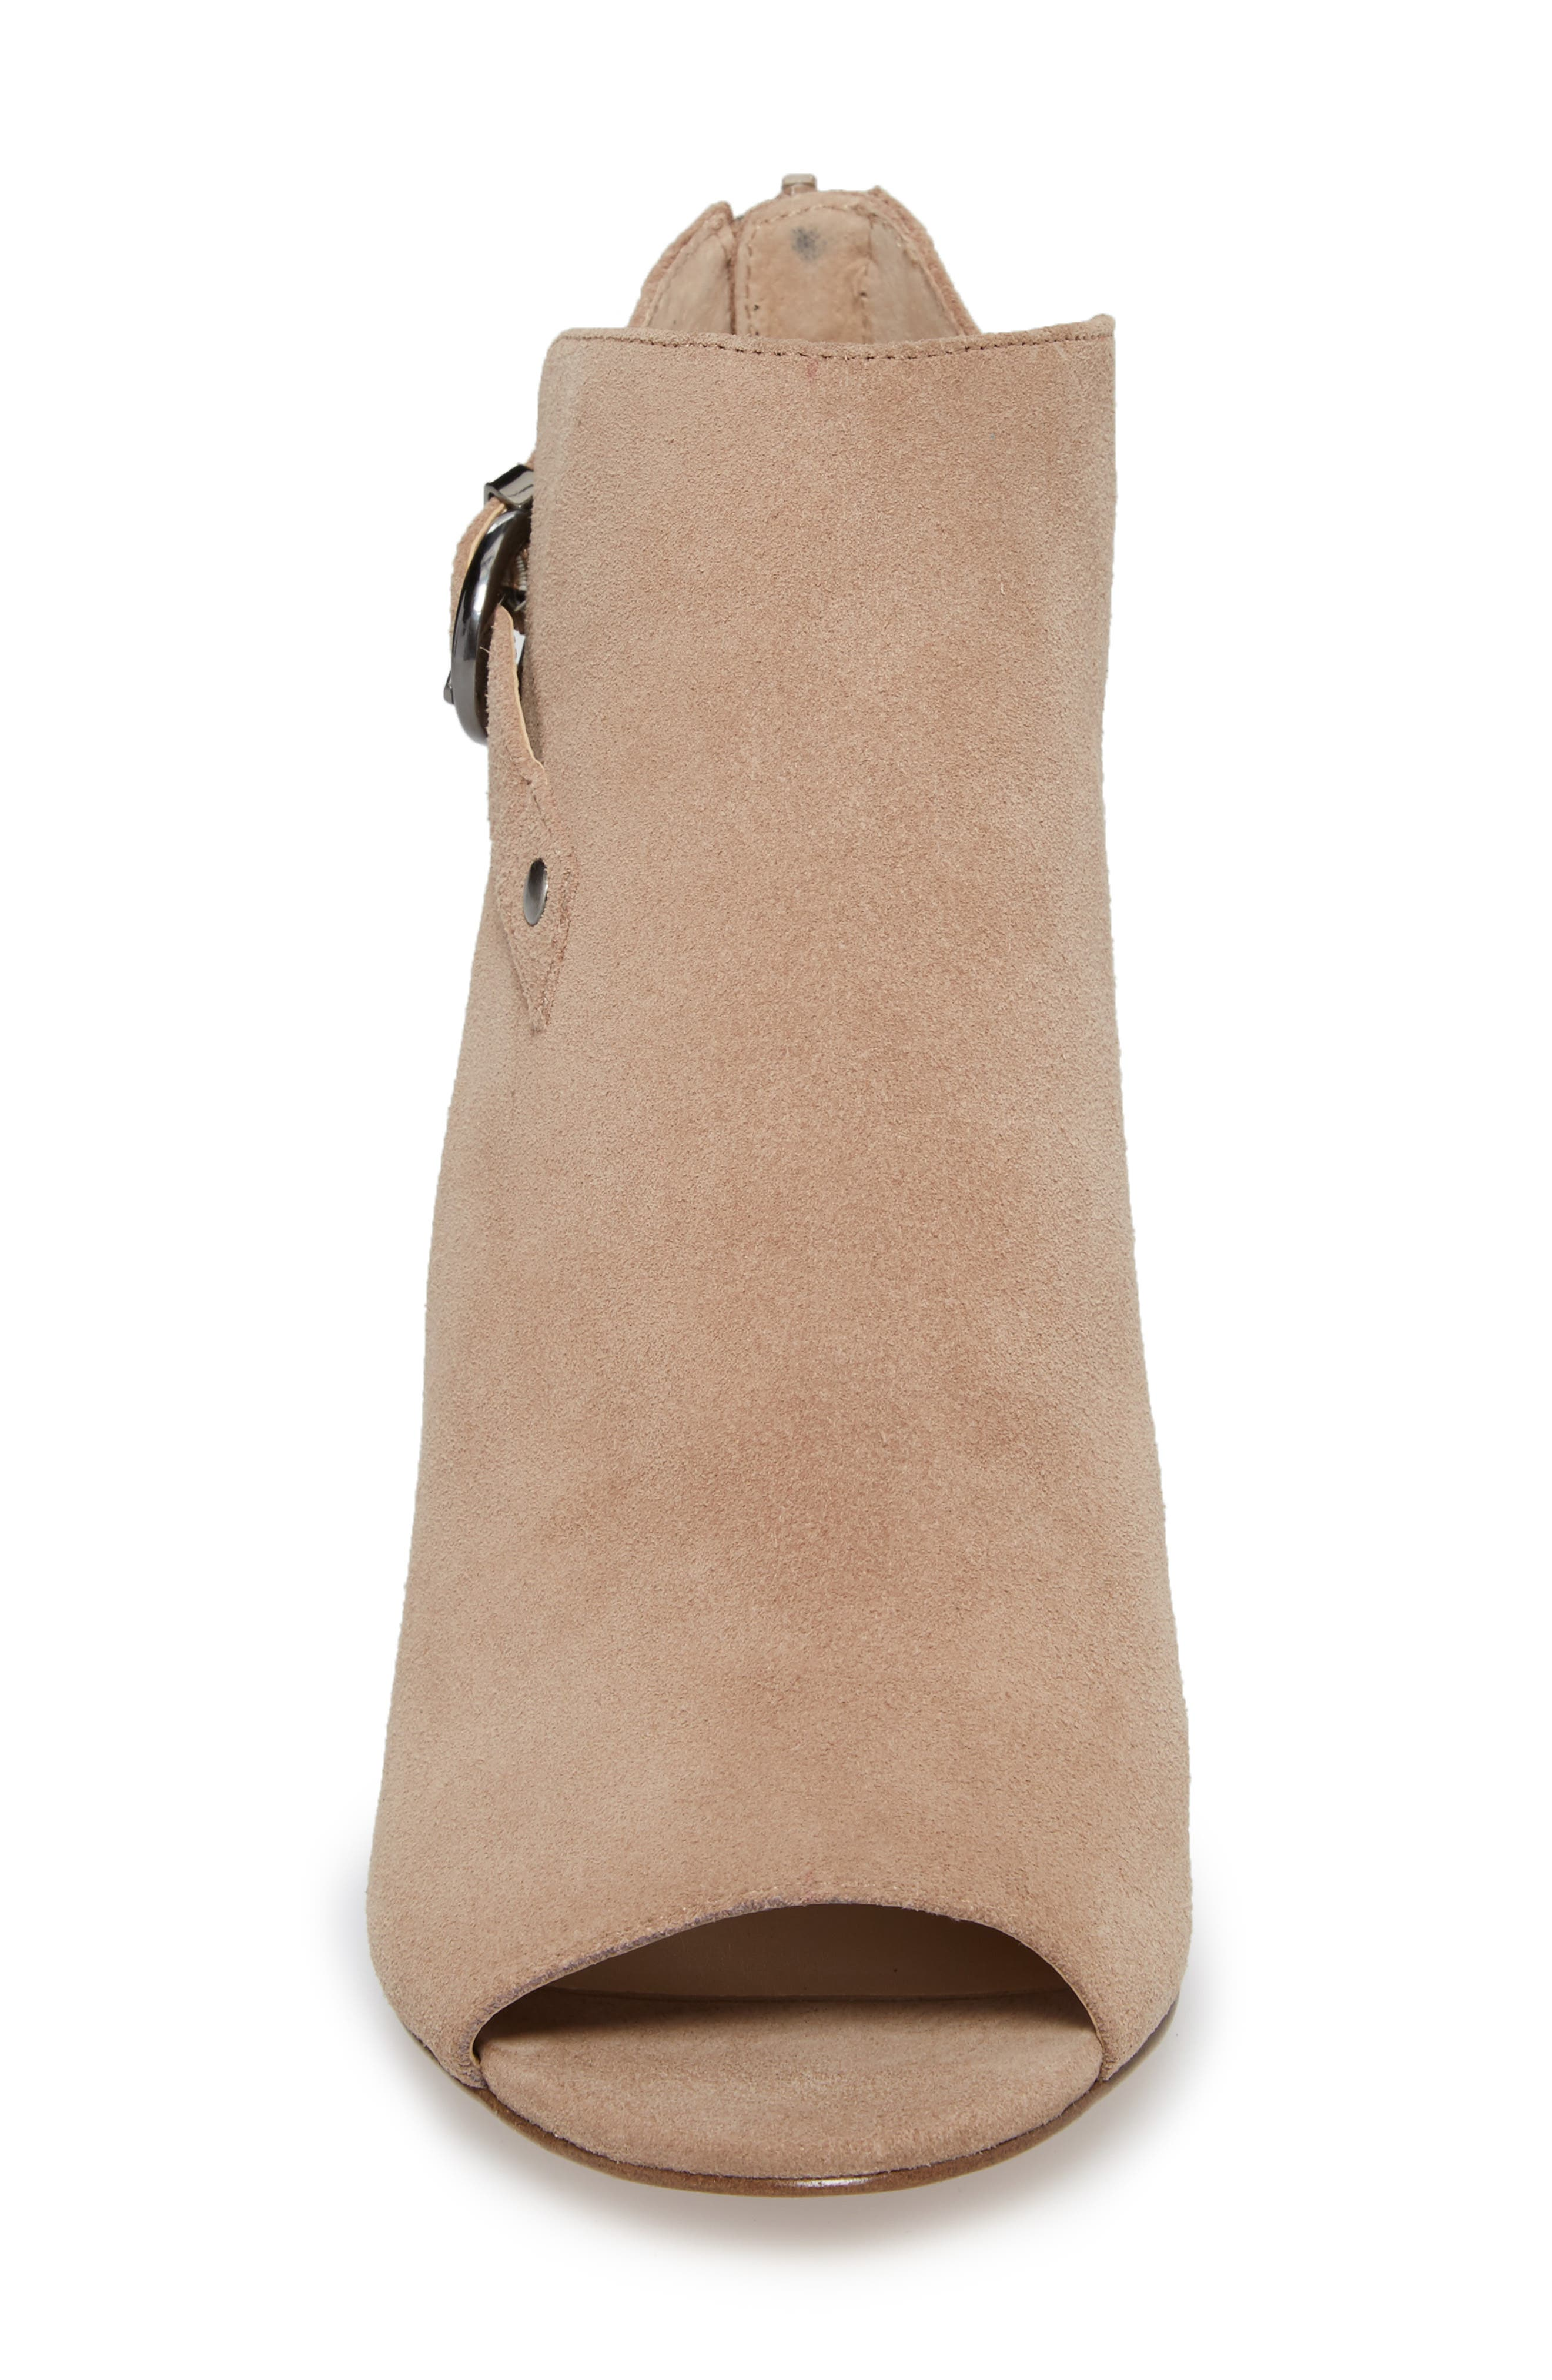 Sally Column Heel Sandal,                             Alternate thumbnail 4, color,                             Warm Taupe Cow Suede